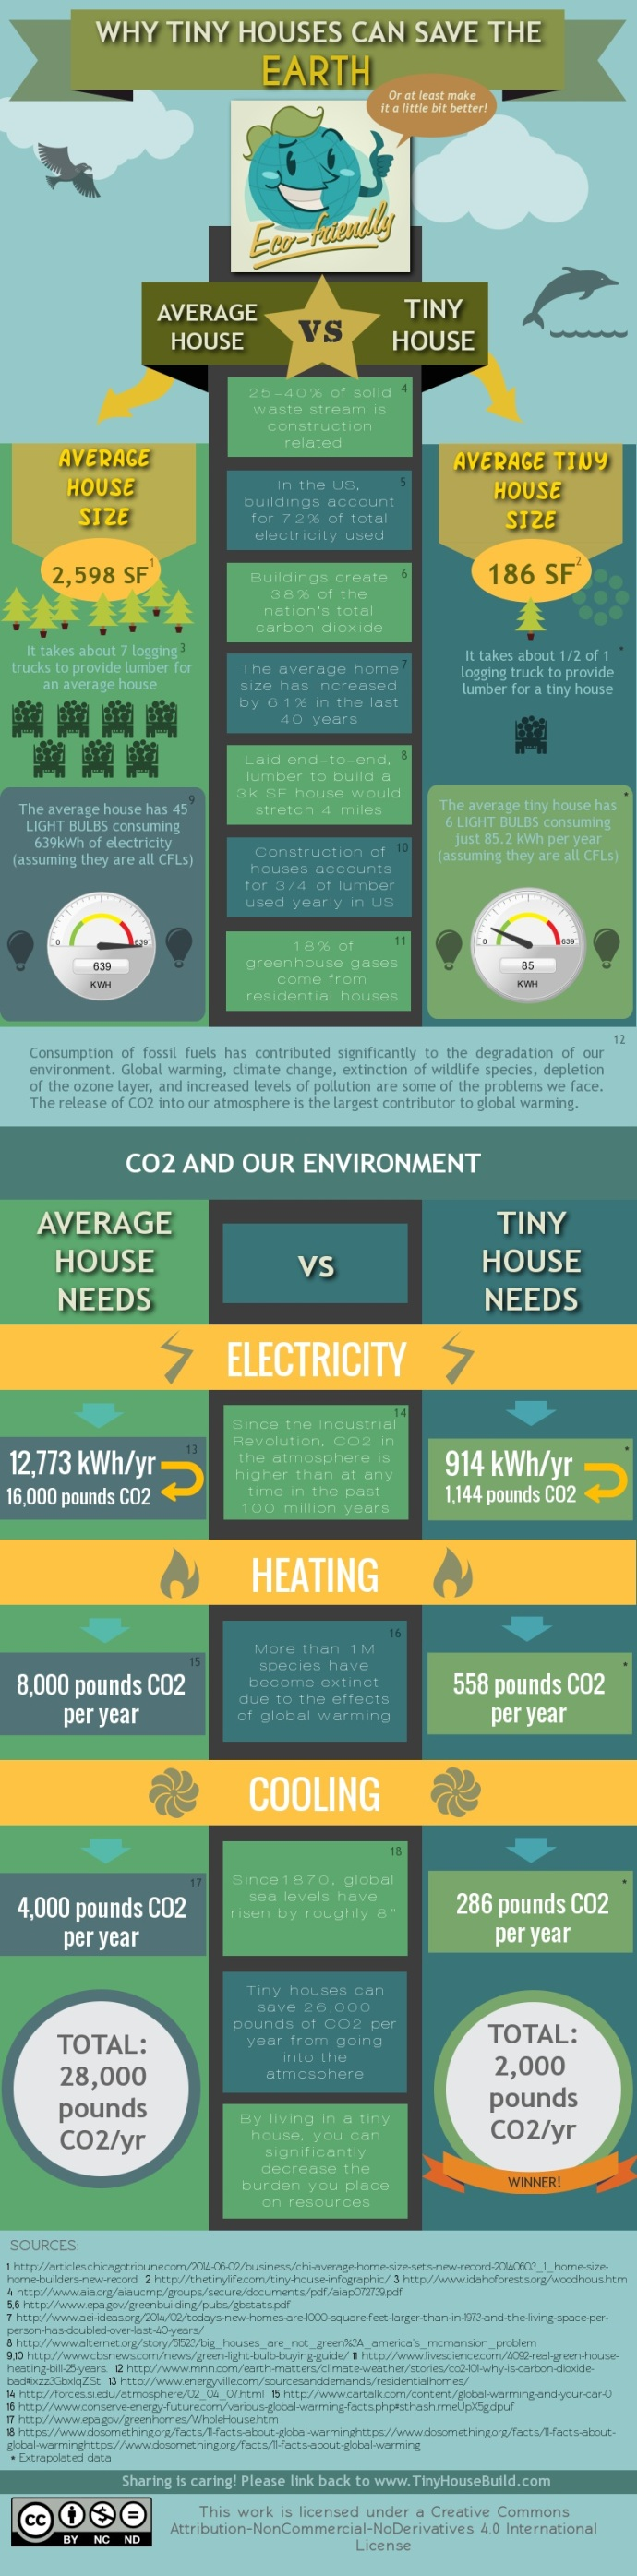 Thanks to Tiny House Build for creating this info graphic